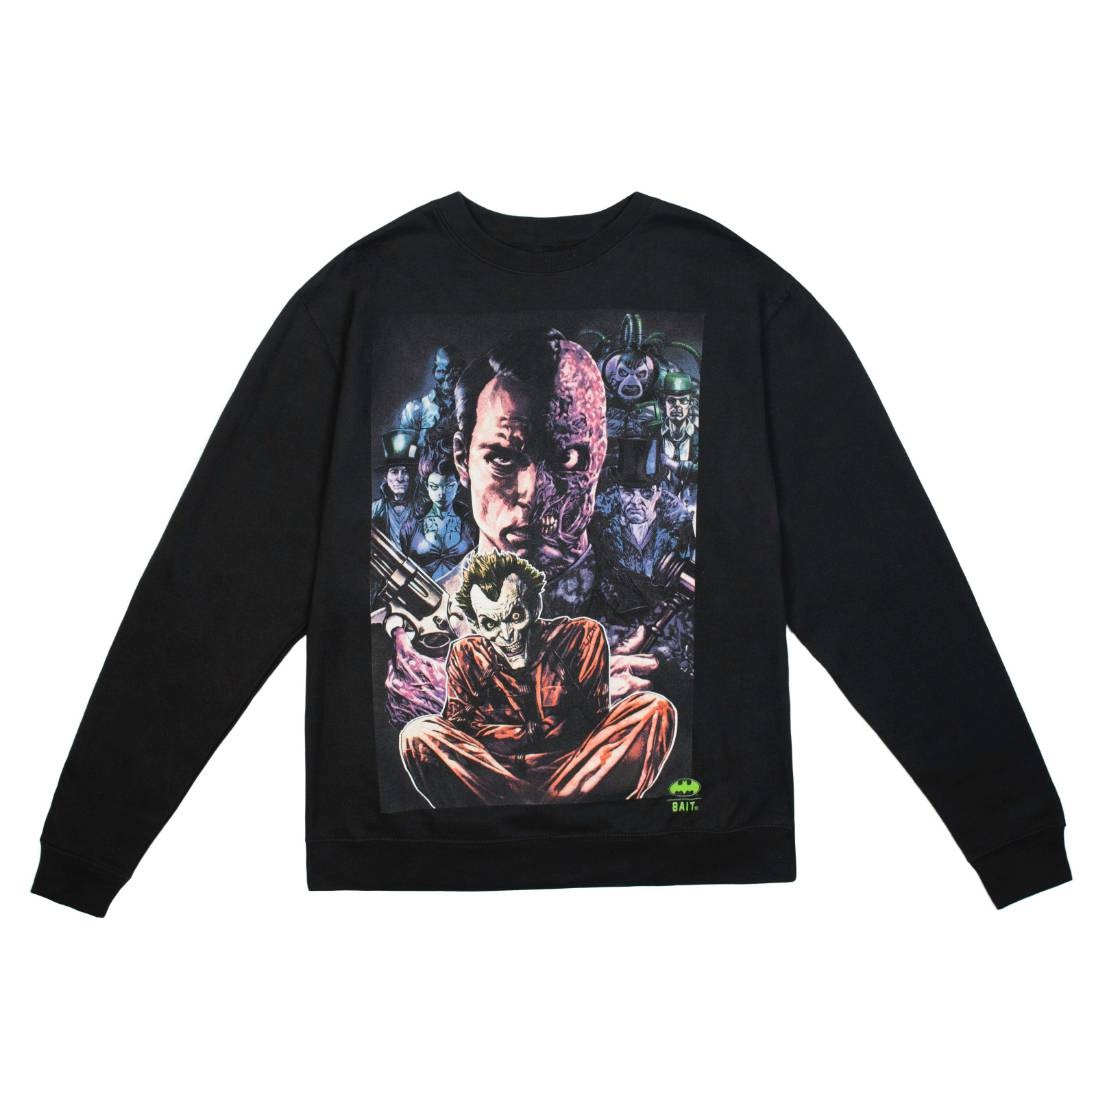 BAIT x Joker Men Villains Crewneck Sweater (black)